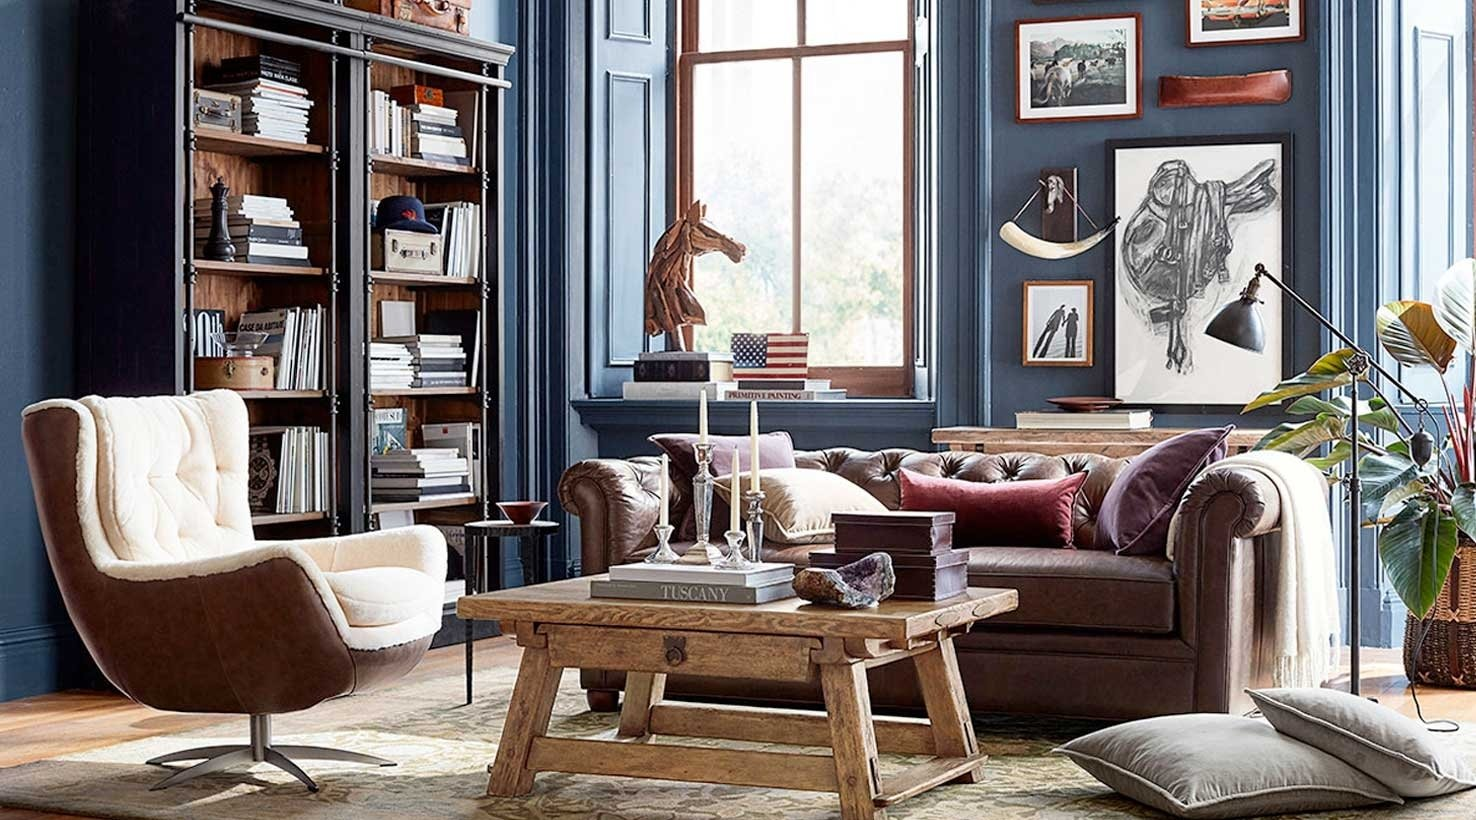 10 Most Recommended Living Room Wall Color Ideas living room paint color ideas inspiration gallery sherwin williams 24 2020